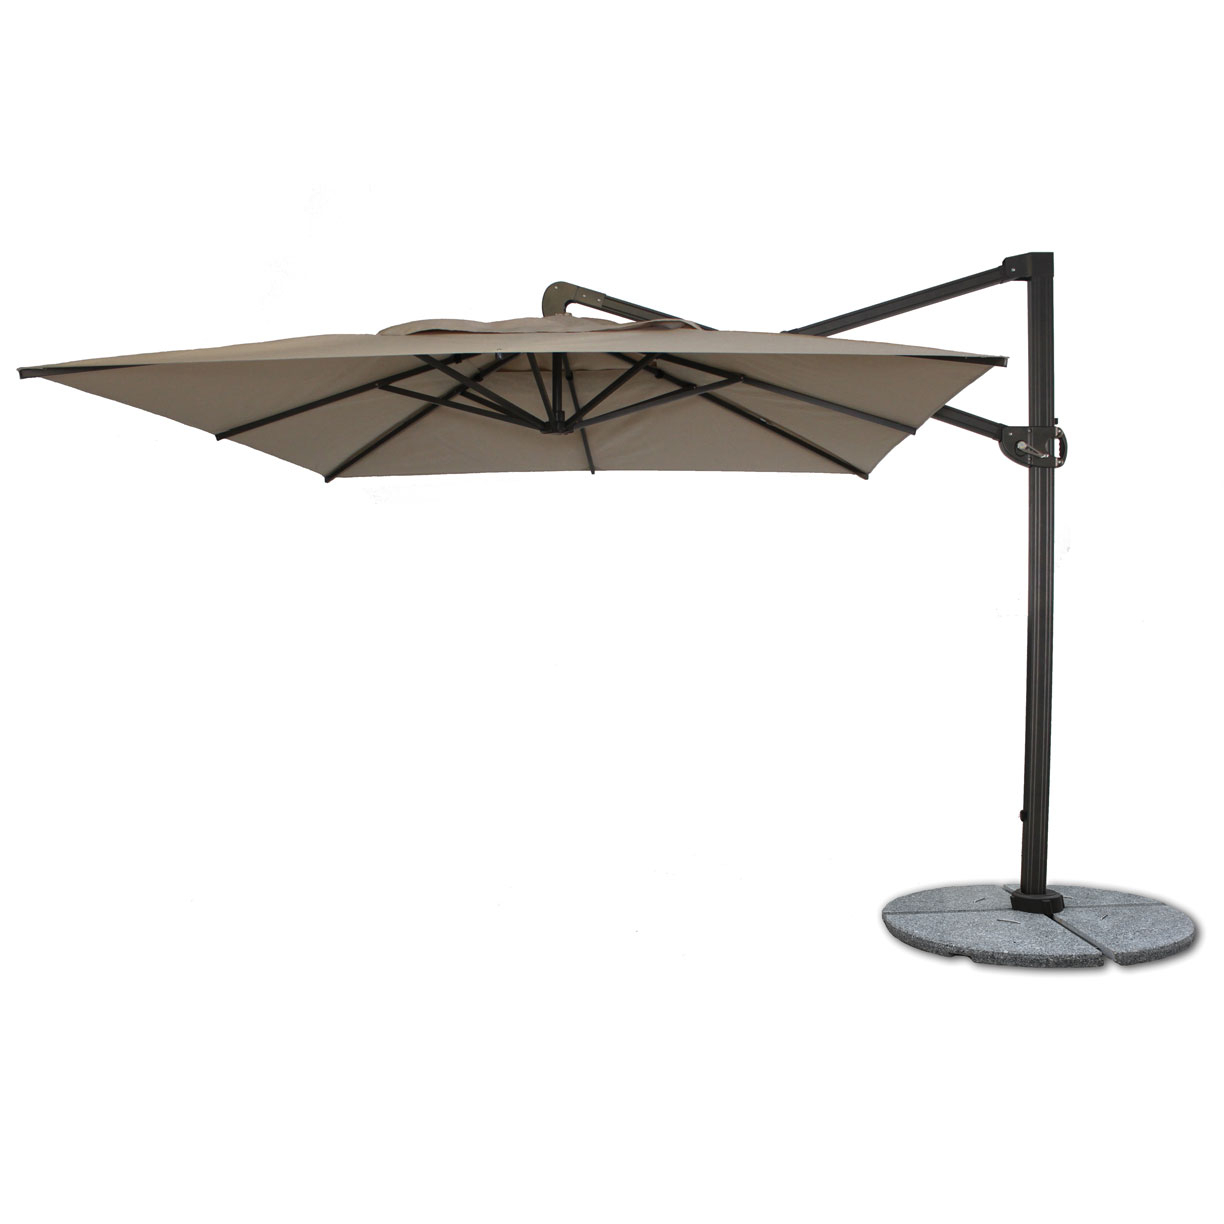 Anova Intended For Well Known Fordwich  Rectangular Cantilever Umbrellas (Gallery 10 of 20)